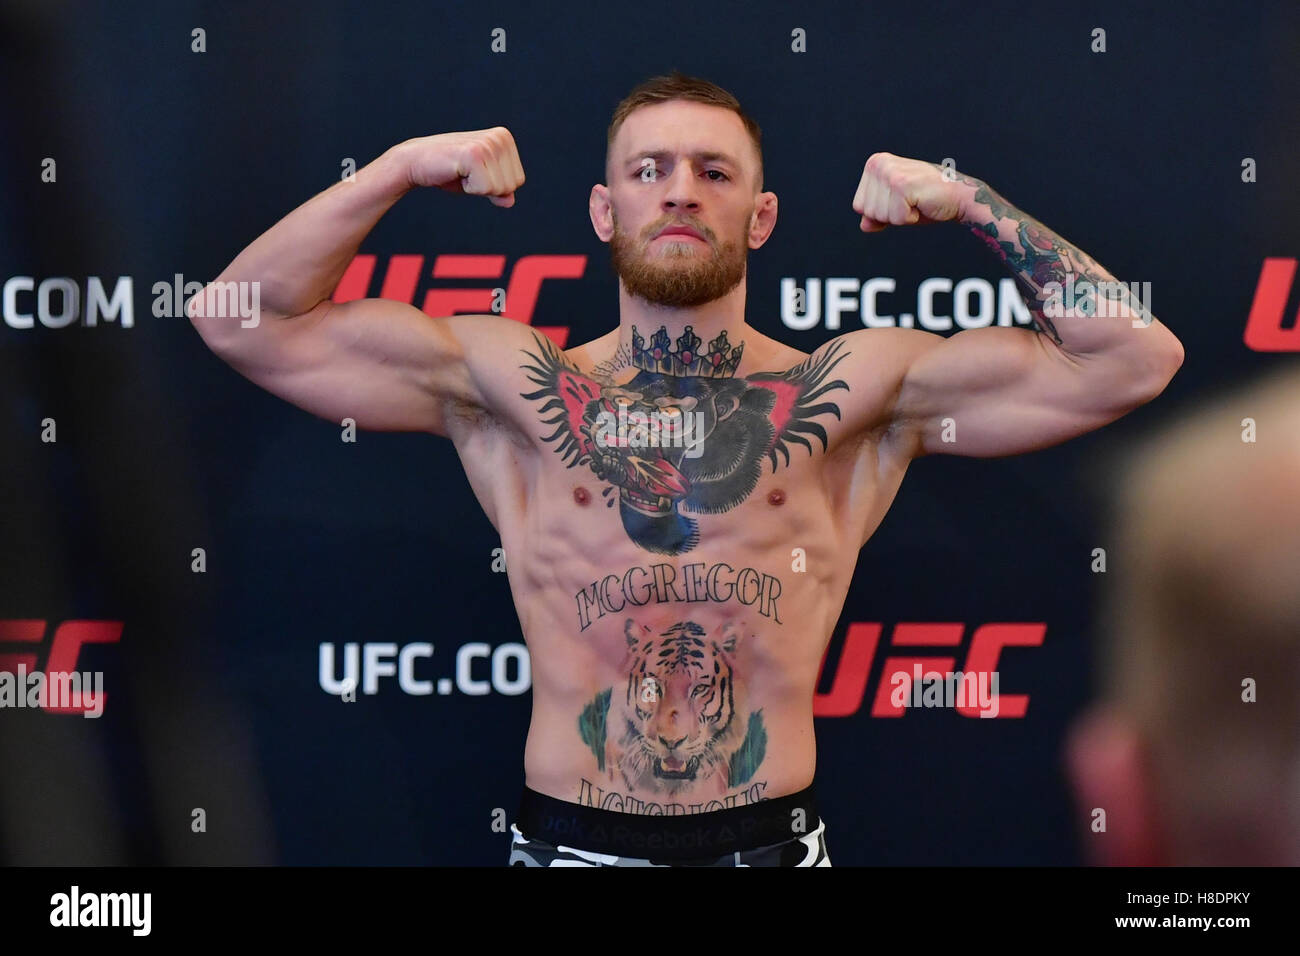 New York, NY, USA. 11, NOV, 2016. Conor McGregor during morning eeigh-in at UFC 205 at the Madison Square Garden. - Stock Image